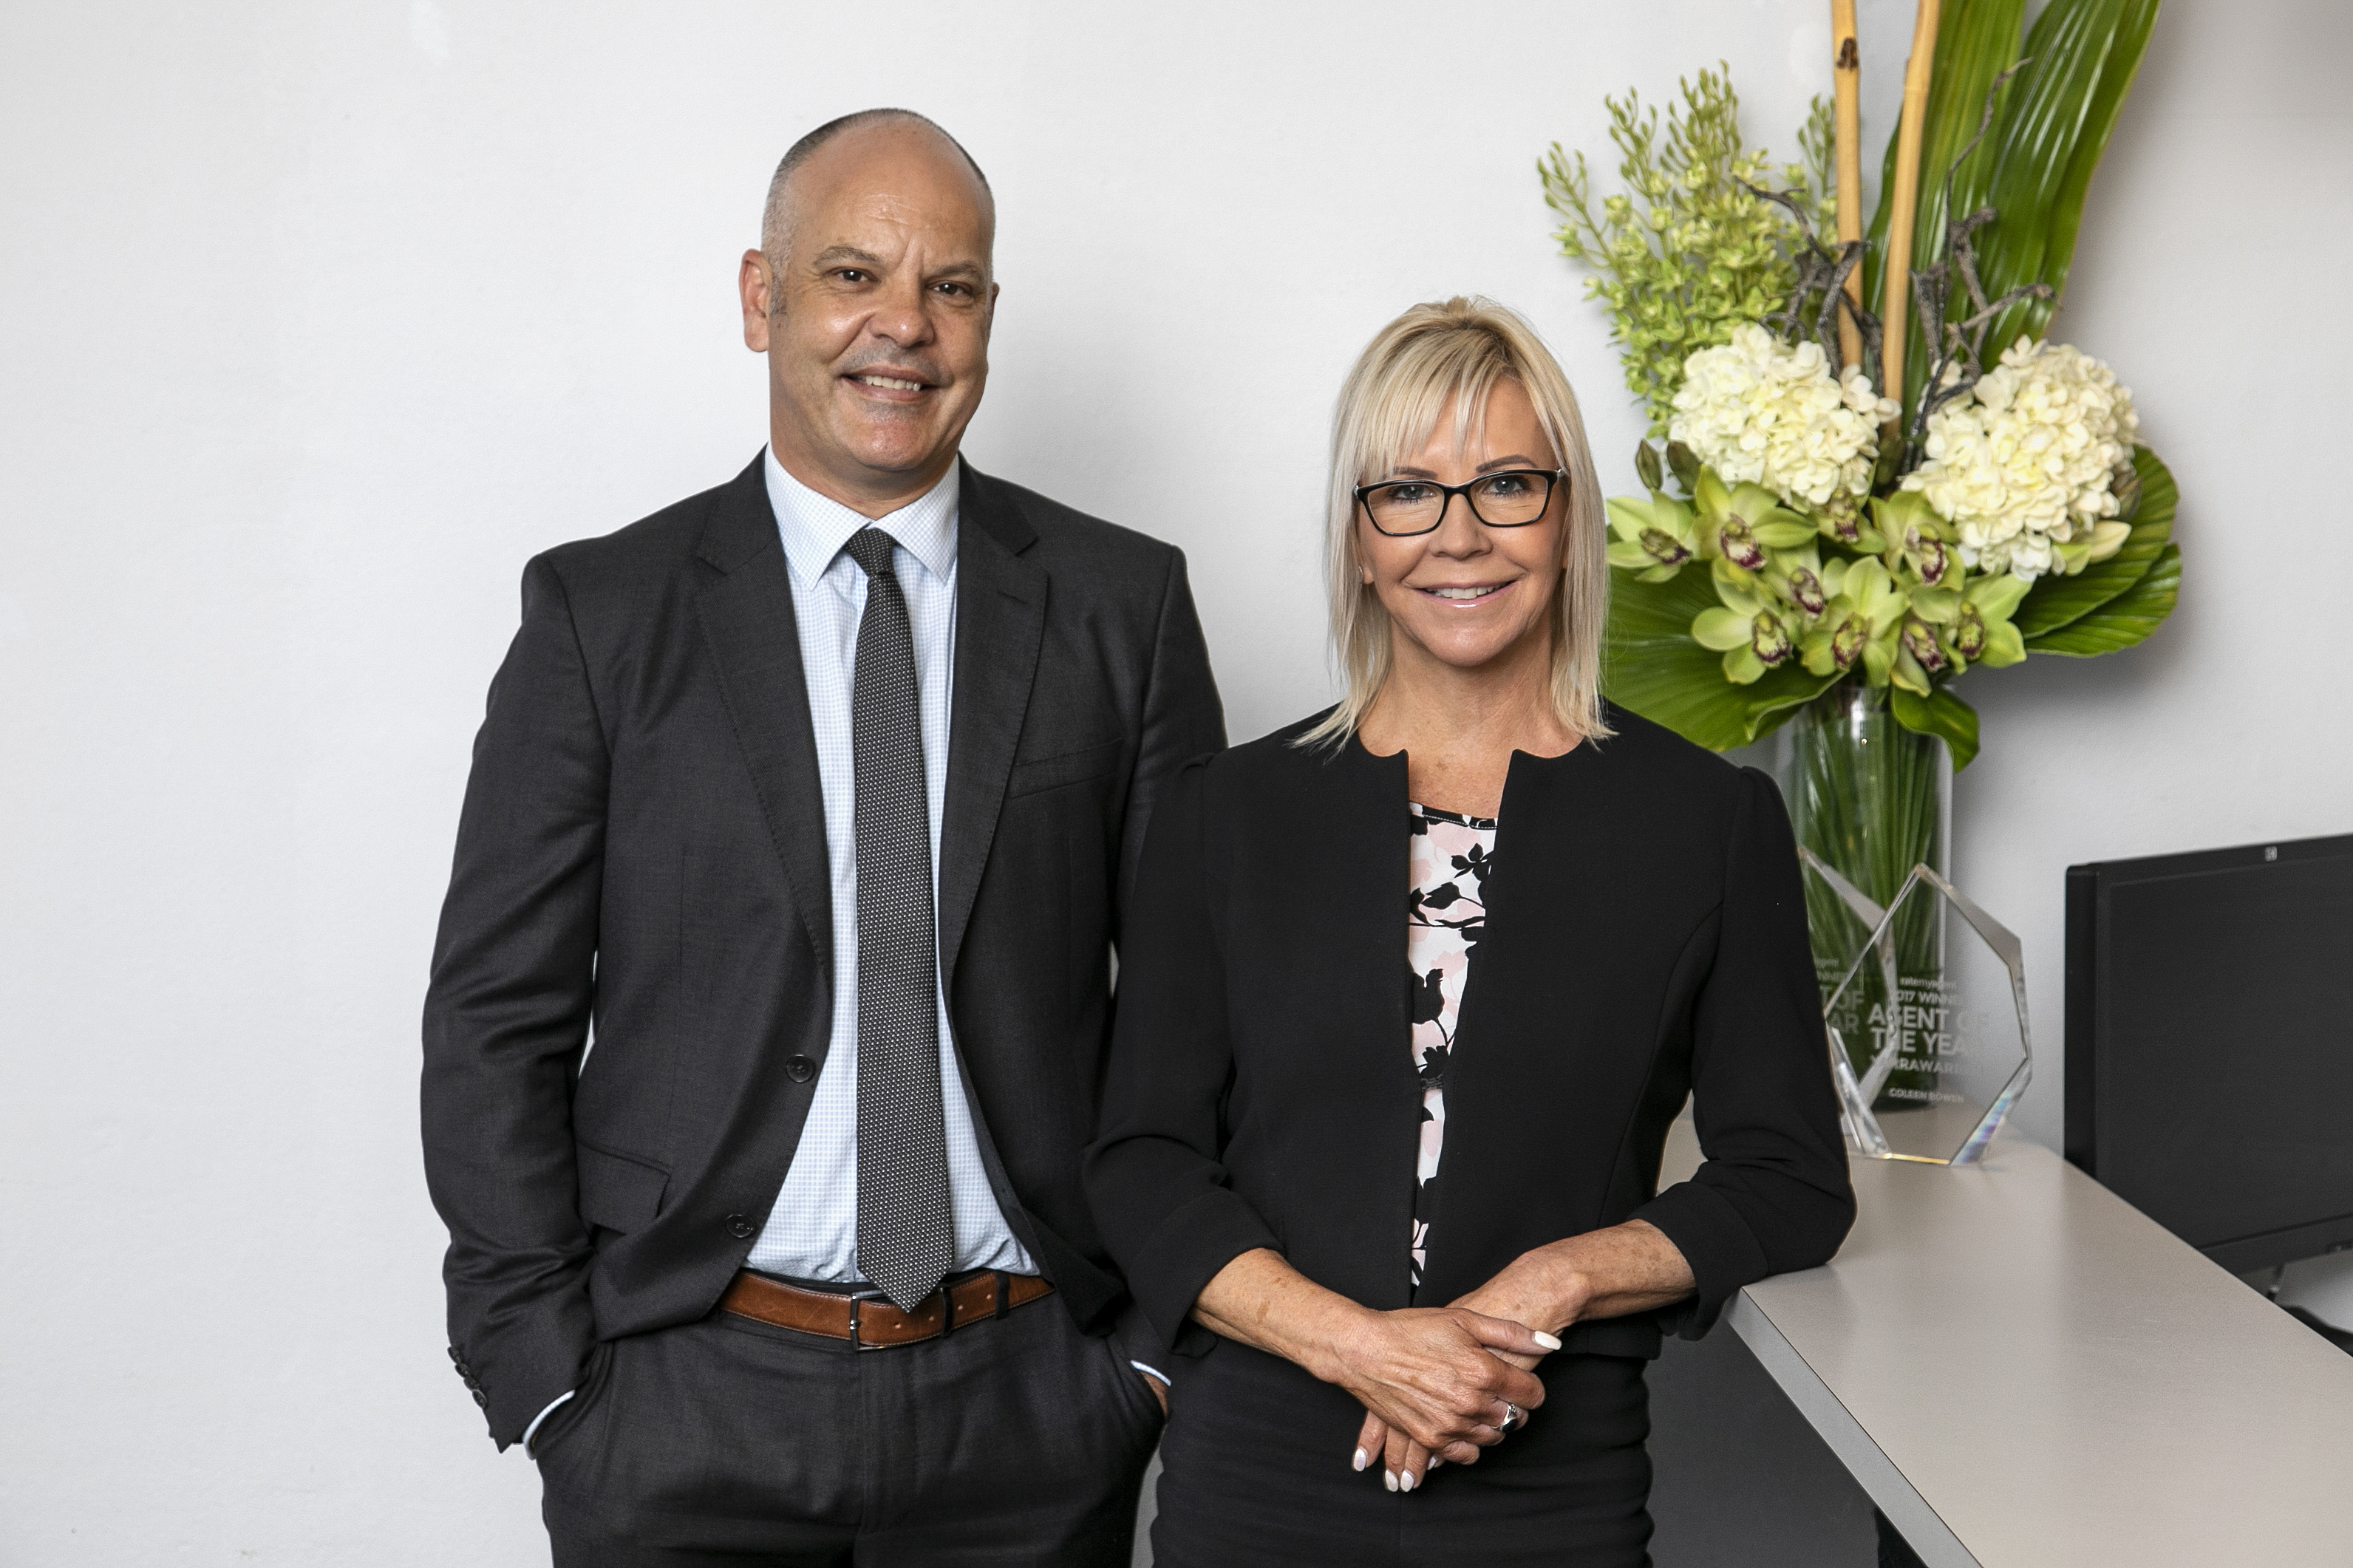 HIGH RES Stone Engadine principal Wade Gilmore and business partner Coleen Bowen Oct2020